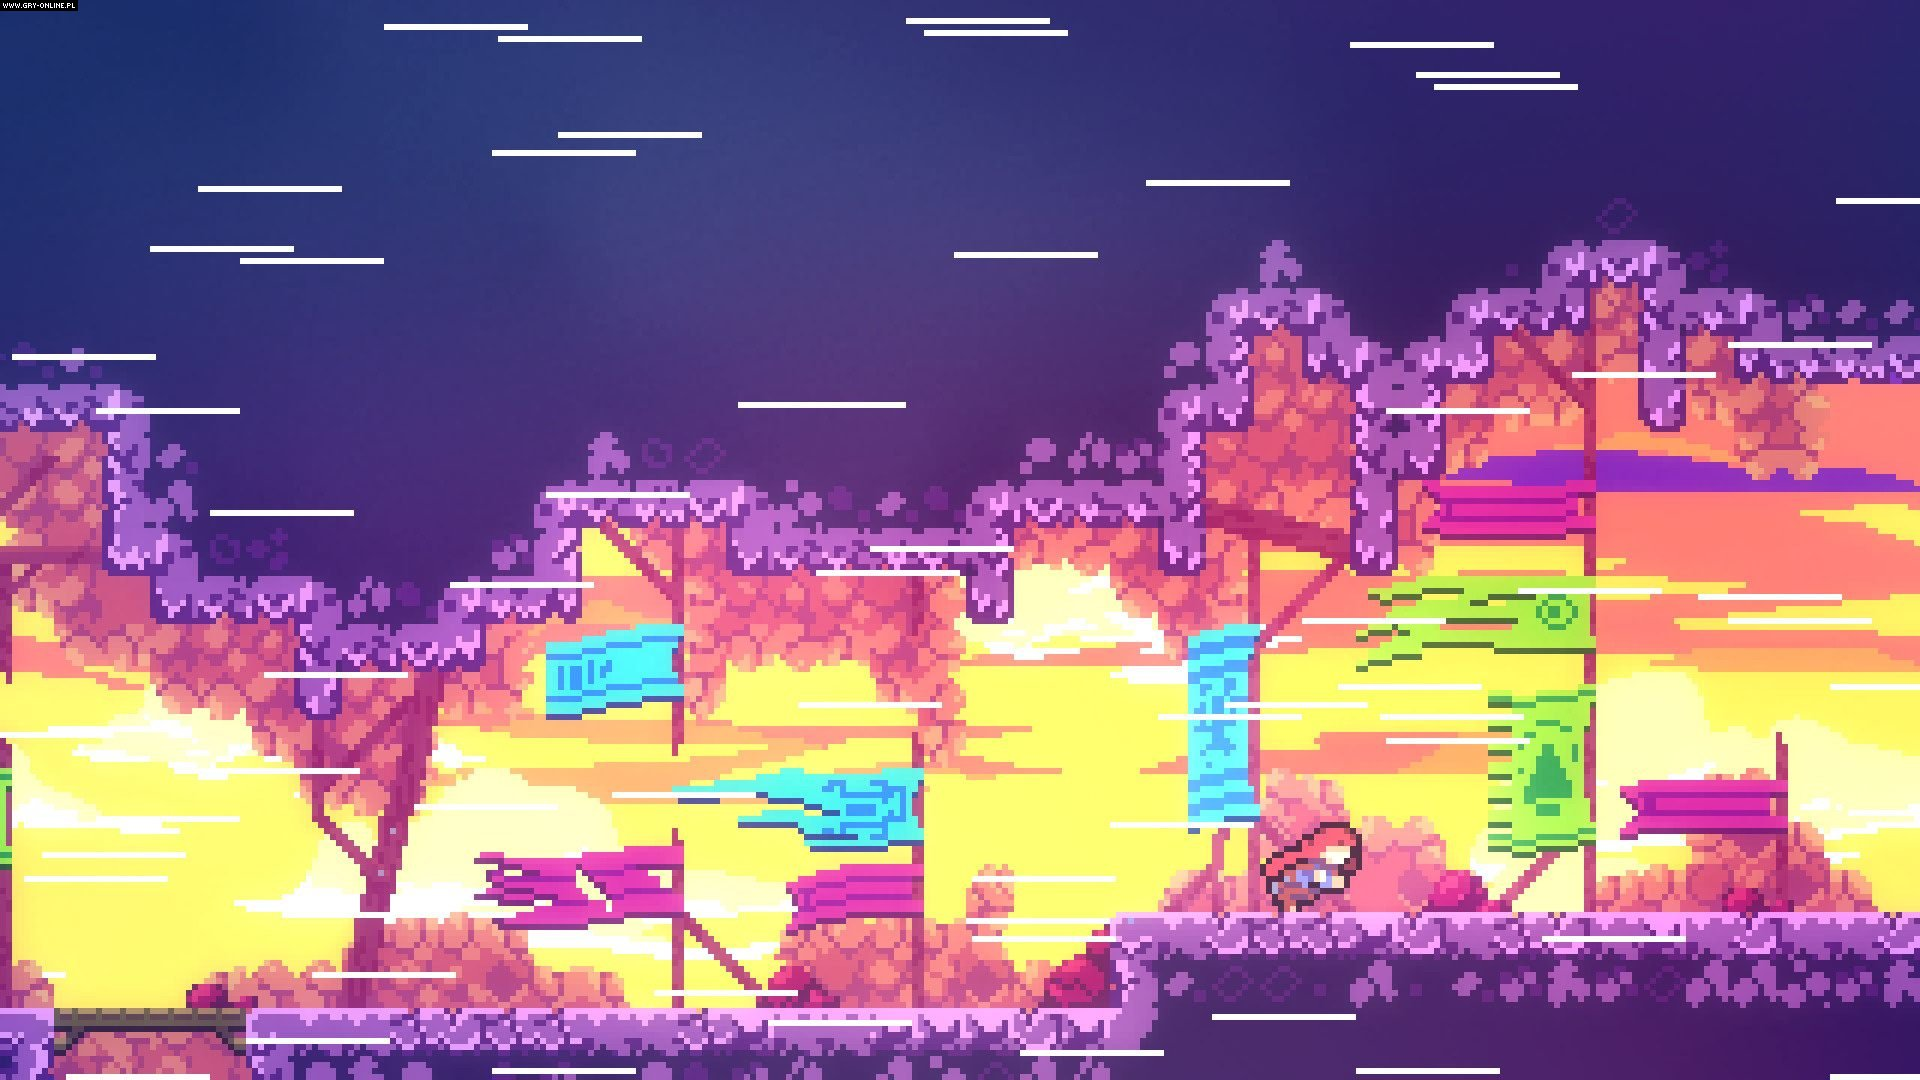 Celeste PC, PS4, XONE, Switch Gry Screen 1/24, Matt Makes Games